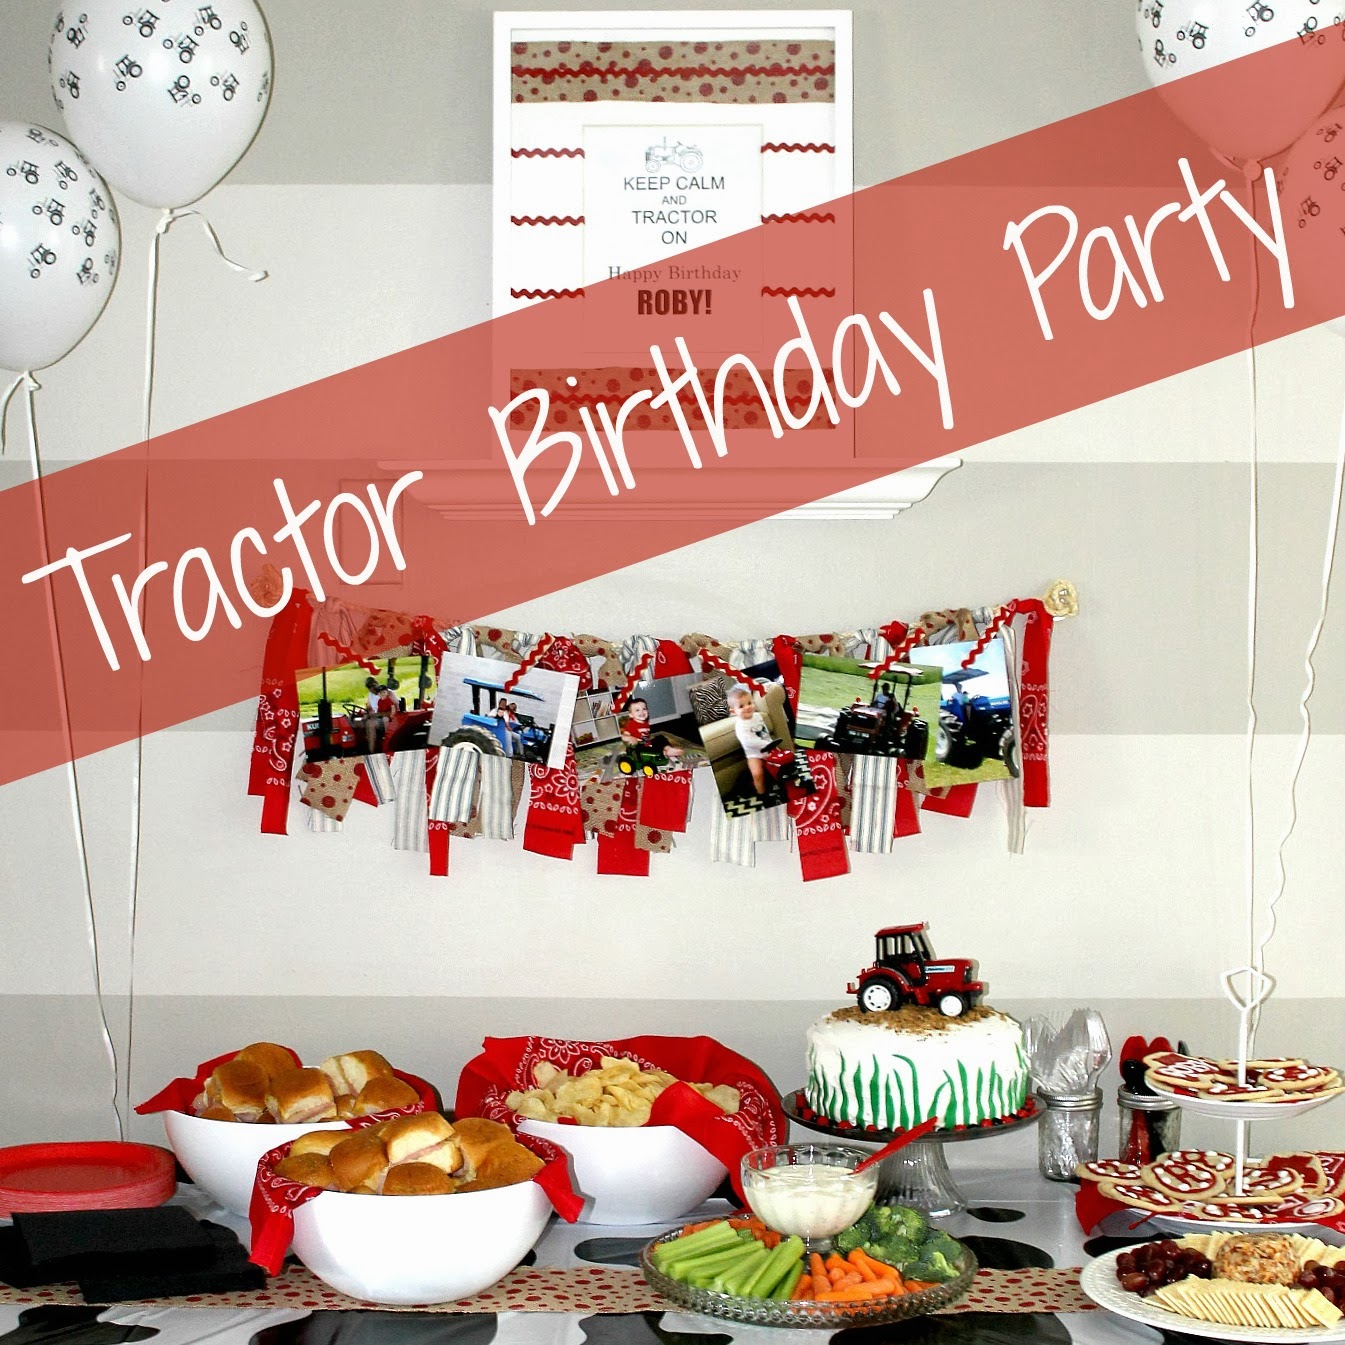 Tractor Birthday Party!